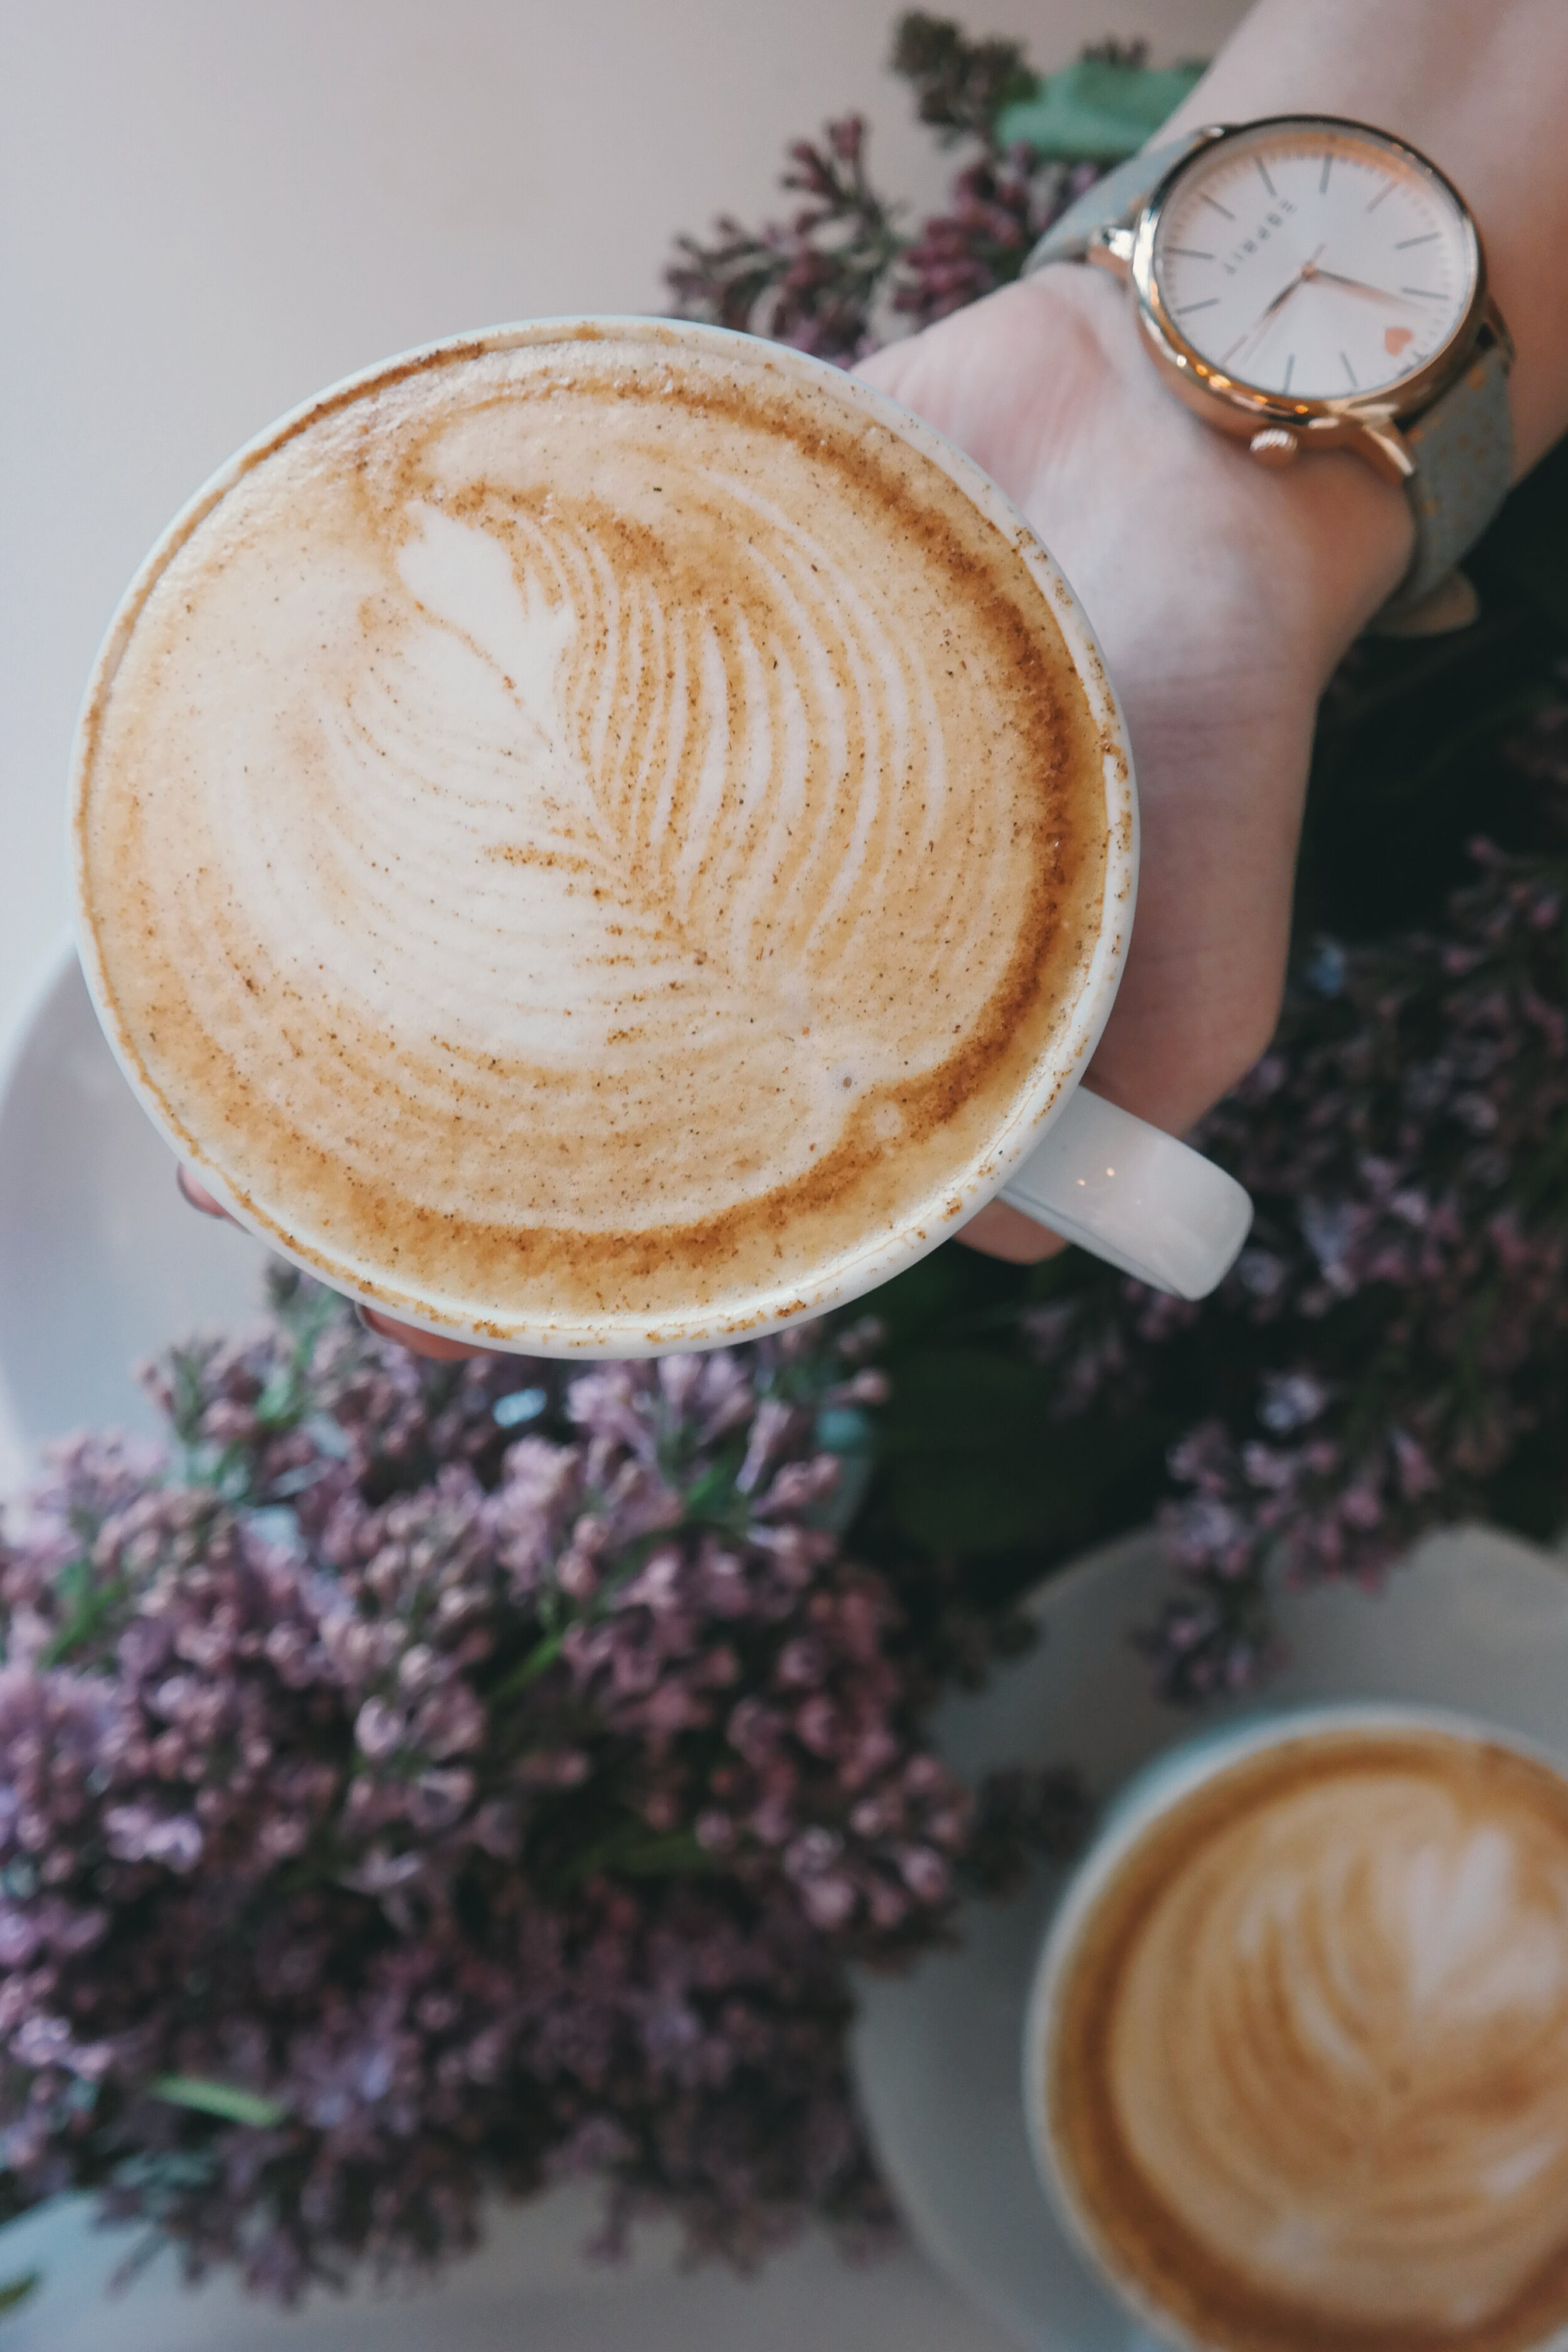 Healthy Latte Recipe - Salted Chocolate Peppermit by Bessie Roaming - If you love coffee and you are intermittent fasting you need to check out this recipe. You can still have delicious coffee on a fast! Click the image to see the recipe.